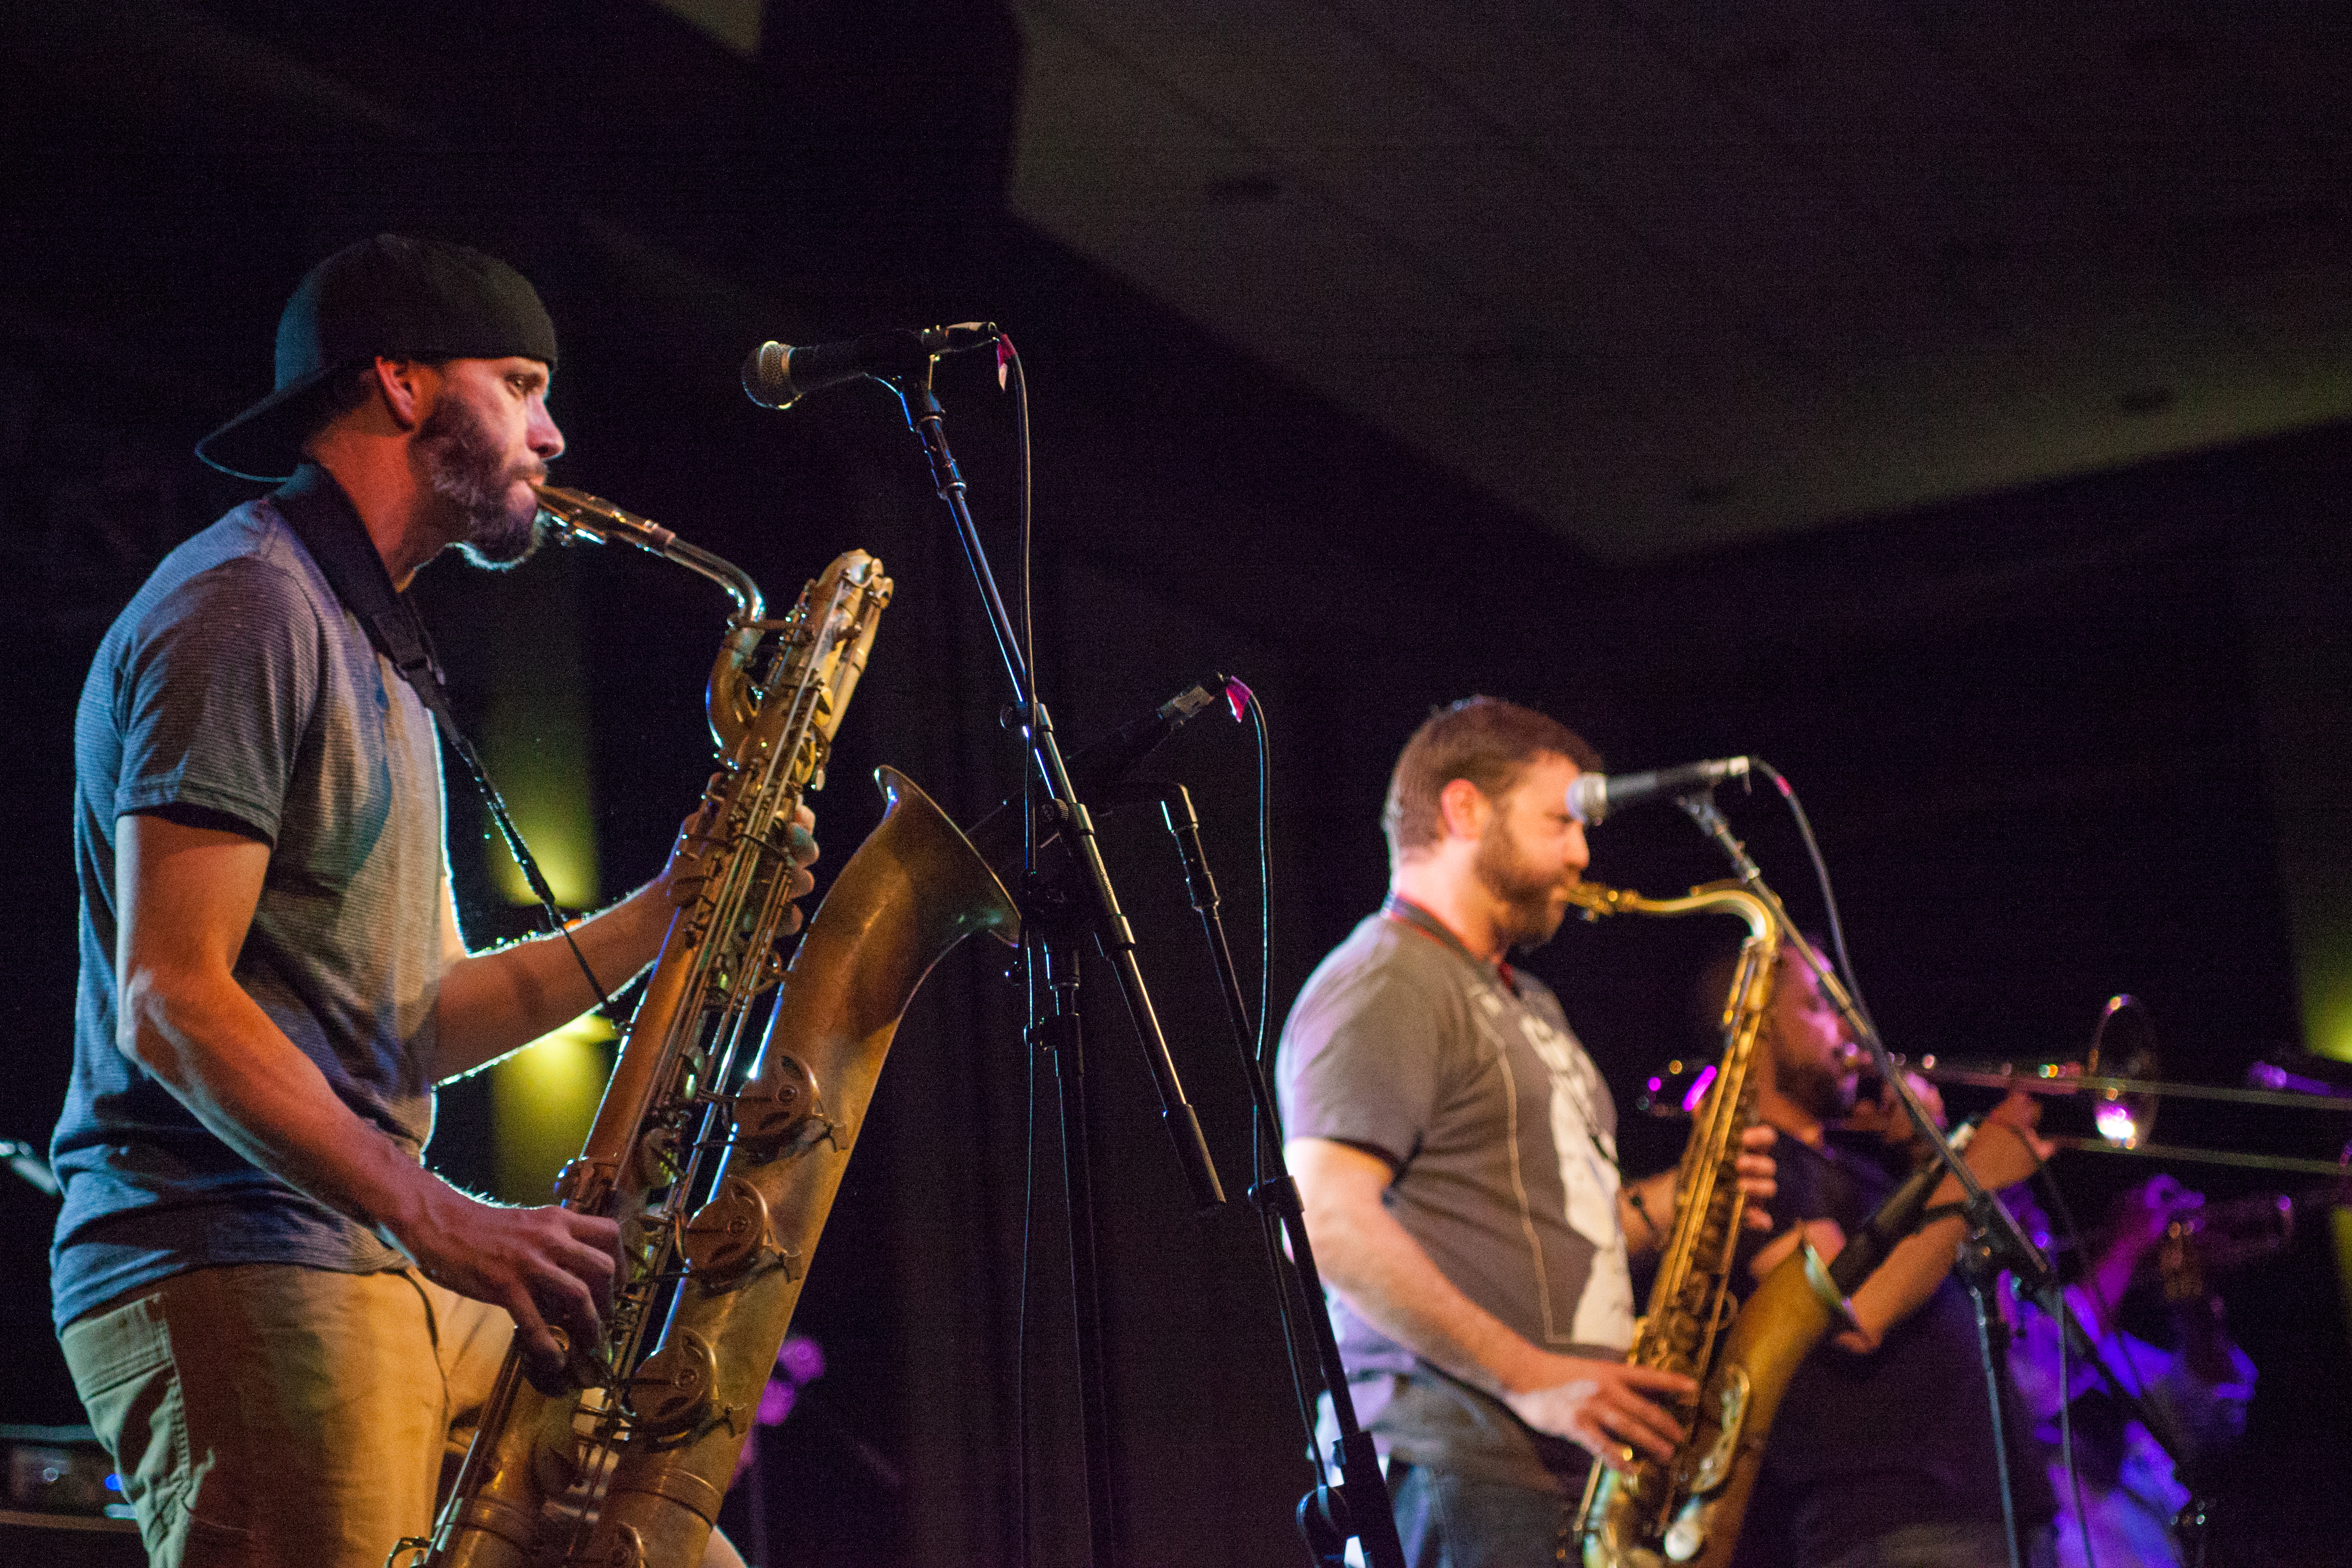 The band played for a little over an hour. Streetlight Manifesto is from New Brunswick, New Jersey and one of its first headlining shows was at Rutgers University. KRYSTEN MASSA / THE STATESMAN